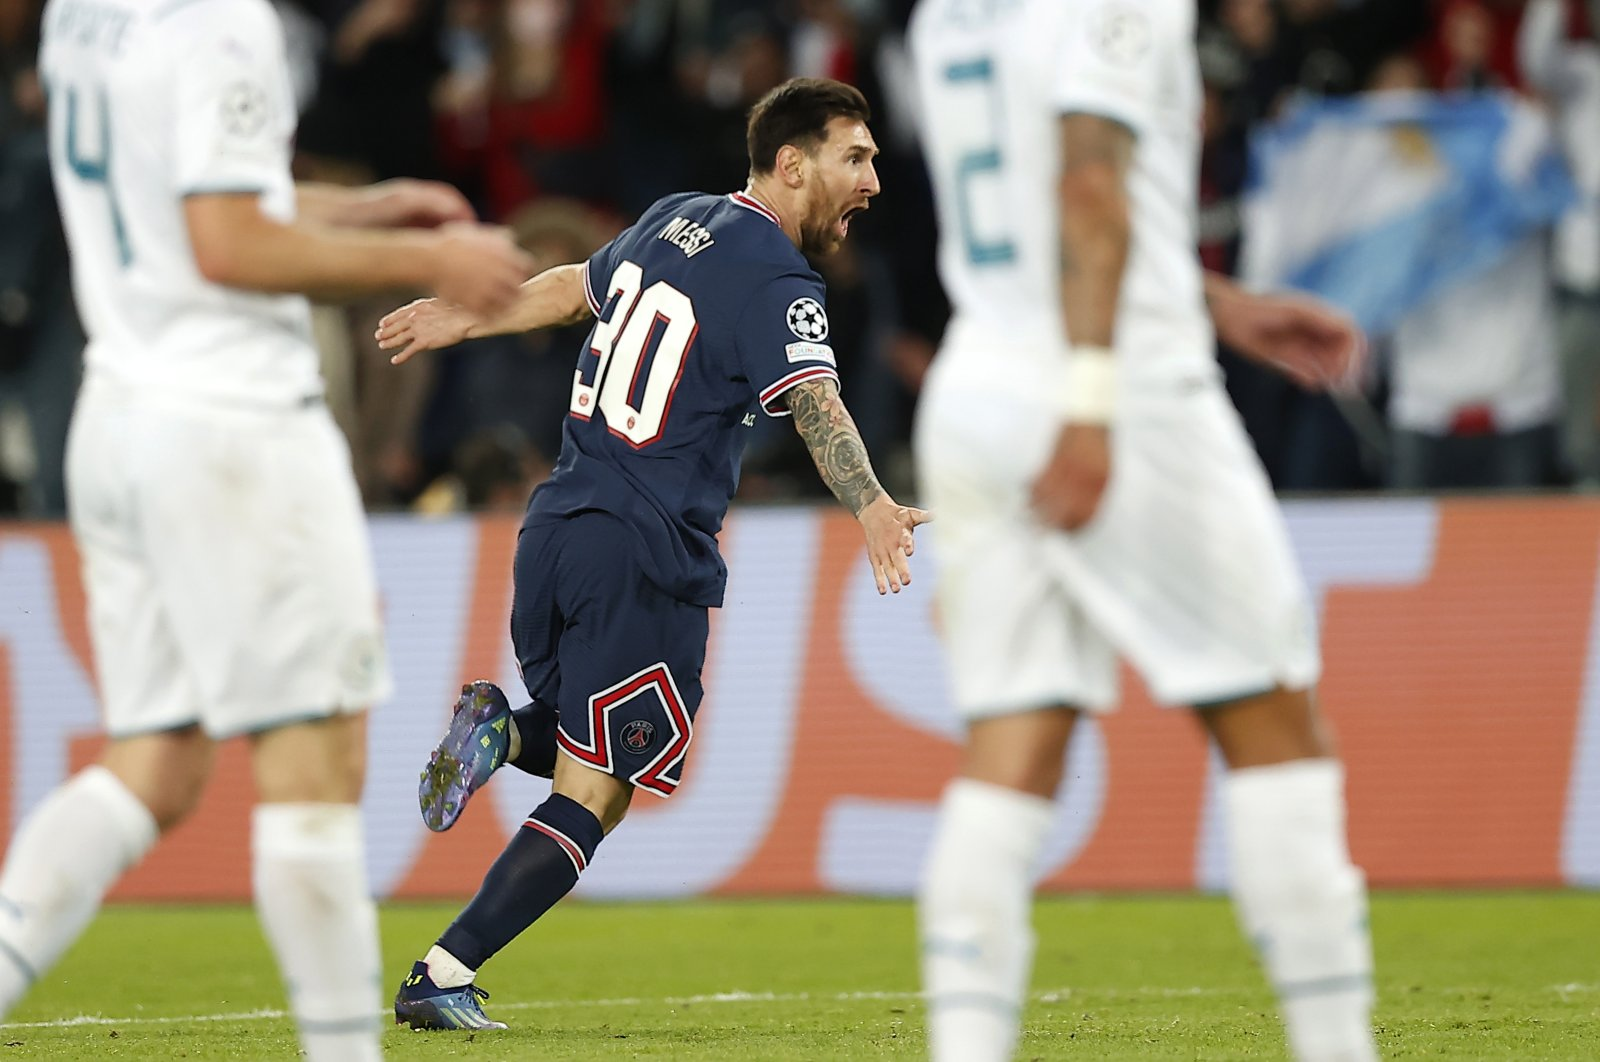 PSG's Lionel Messi celebrates scoring his first goal for his club during a Champions League at the Parc des Princes stadium, in Paris, France, Sept. 28, 2021. (EPA Photo)